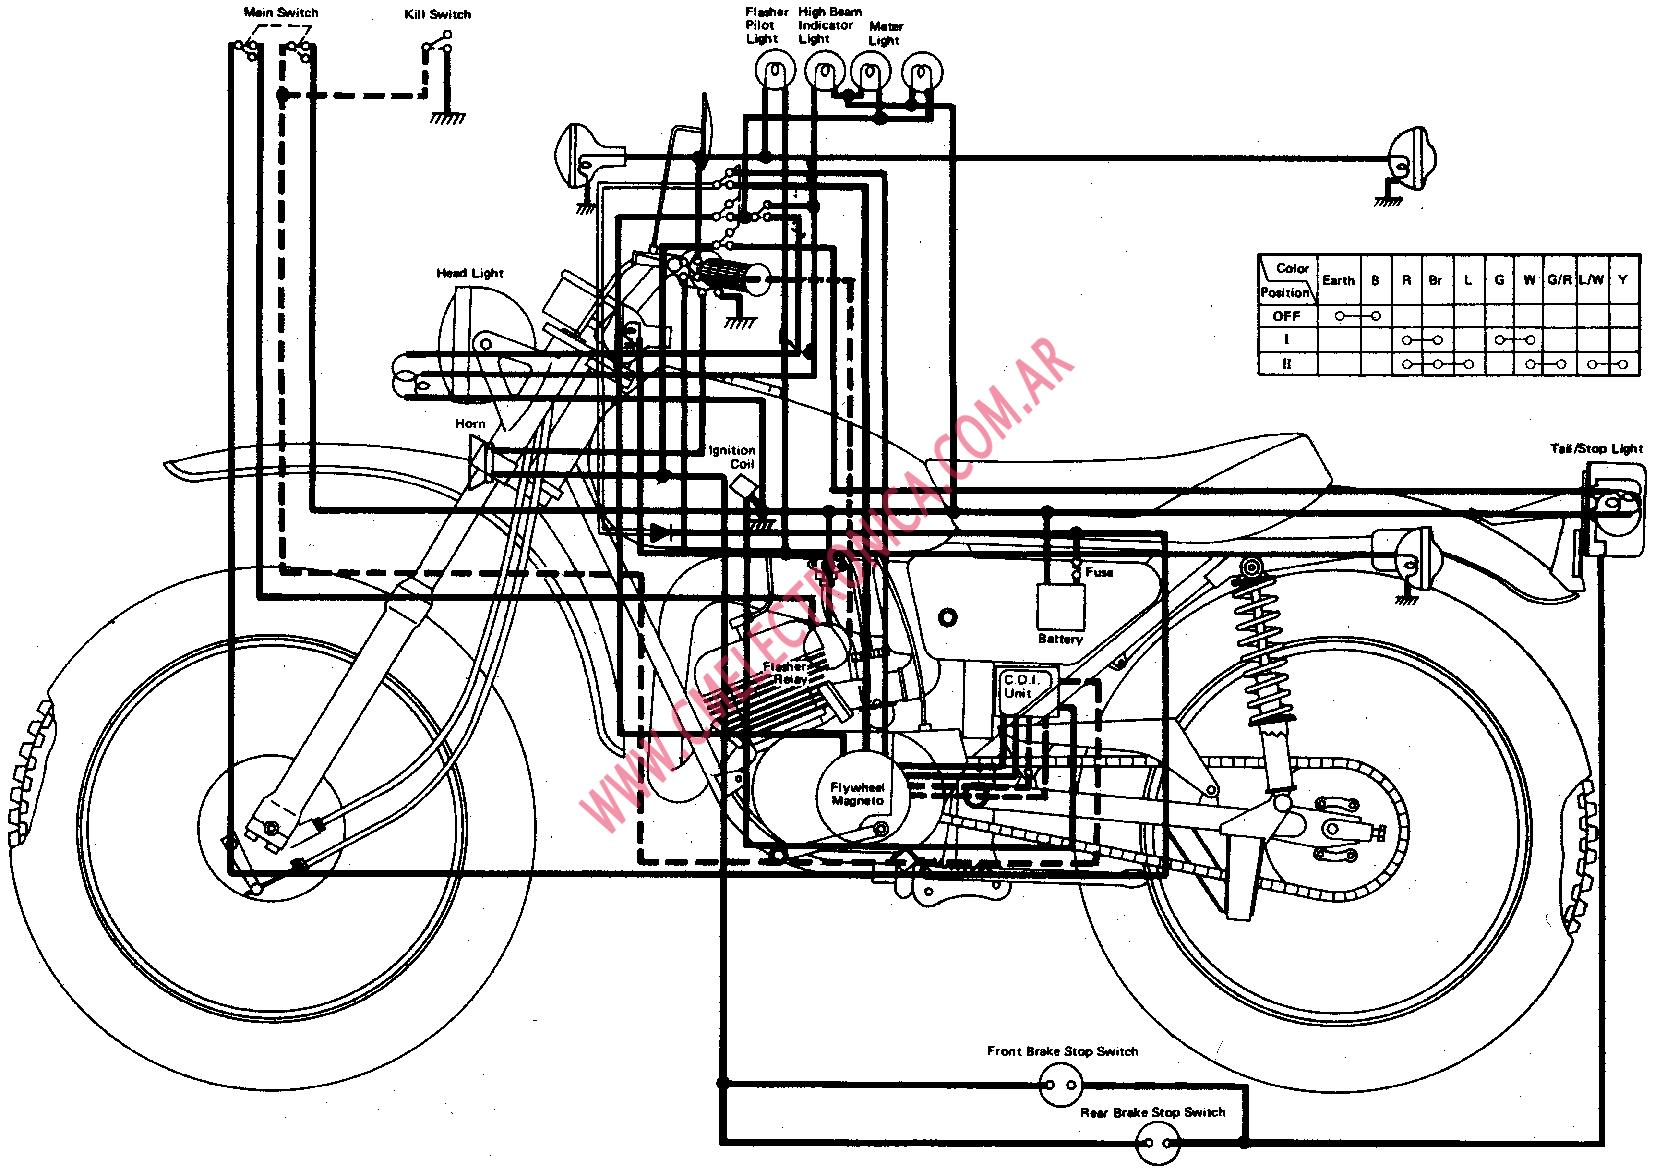 T5010804 Broke clutch push rod assembly 73 360 additionally Motorcycle Wiring Diagrams Yamaha Wr450 2004 additionally Yamaha Dt360 a additionally  on yamaha dt360 wiring diagram